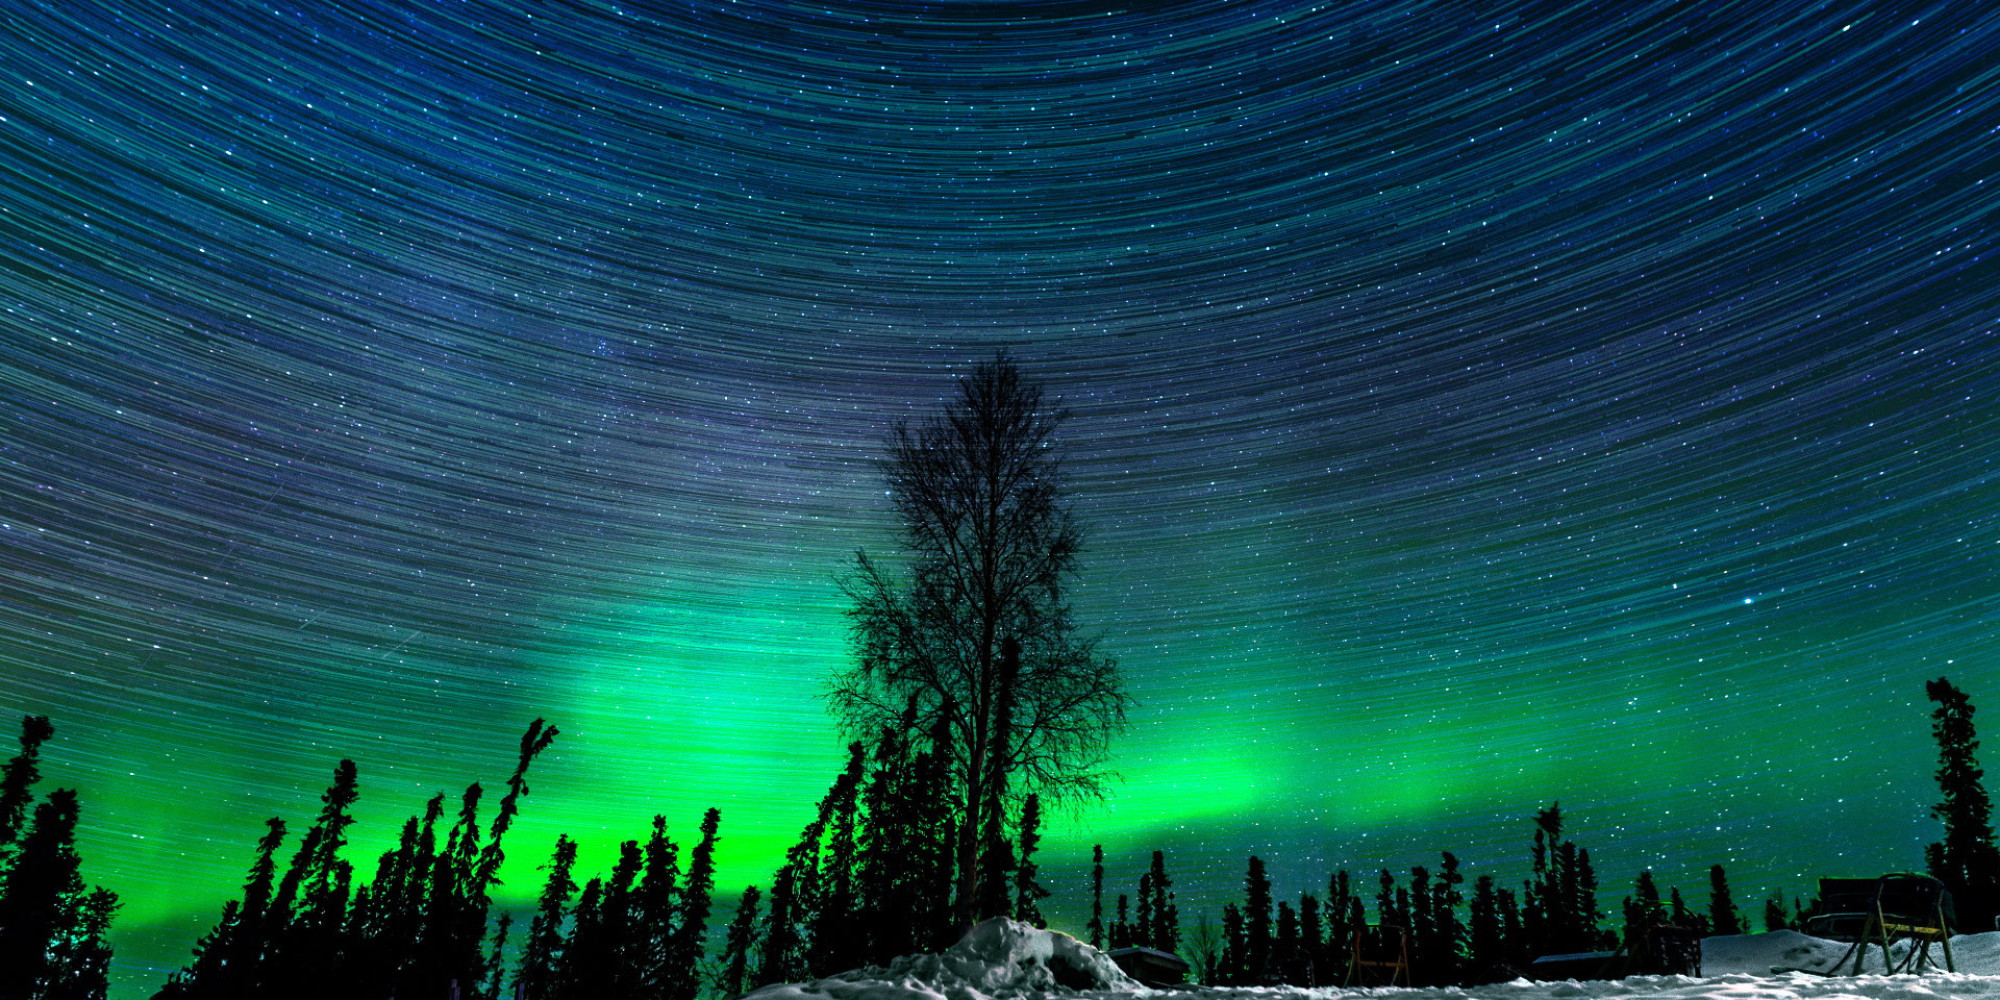 Hypnotic Northern Lights Time Lapse Captured Over 2 Magical Nights